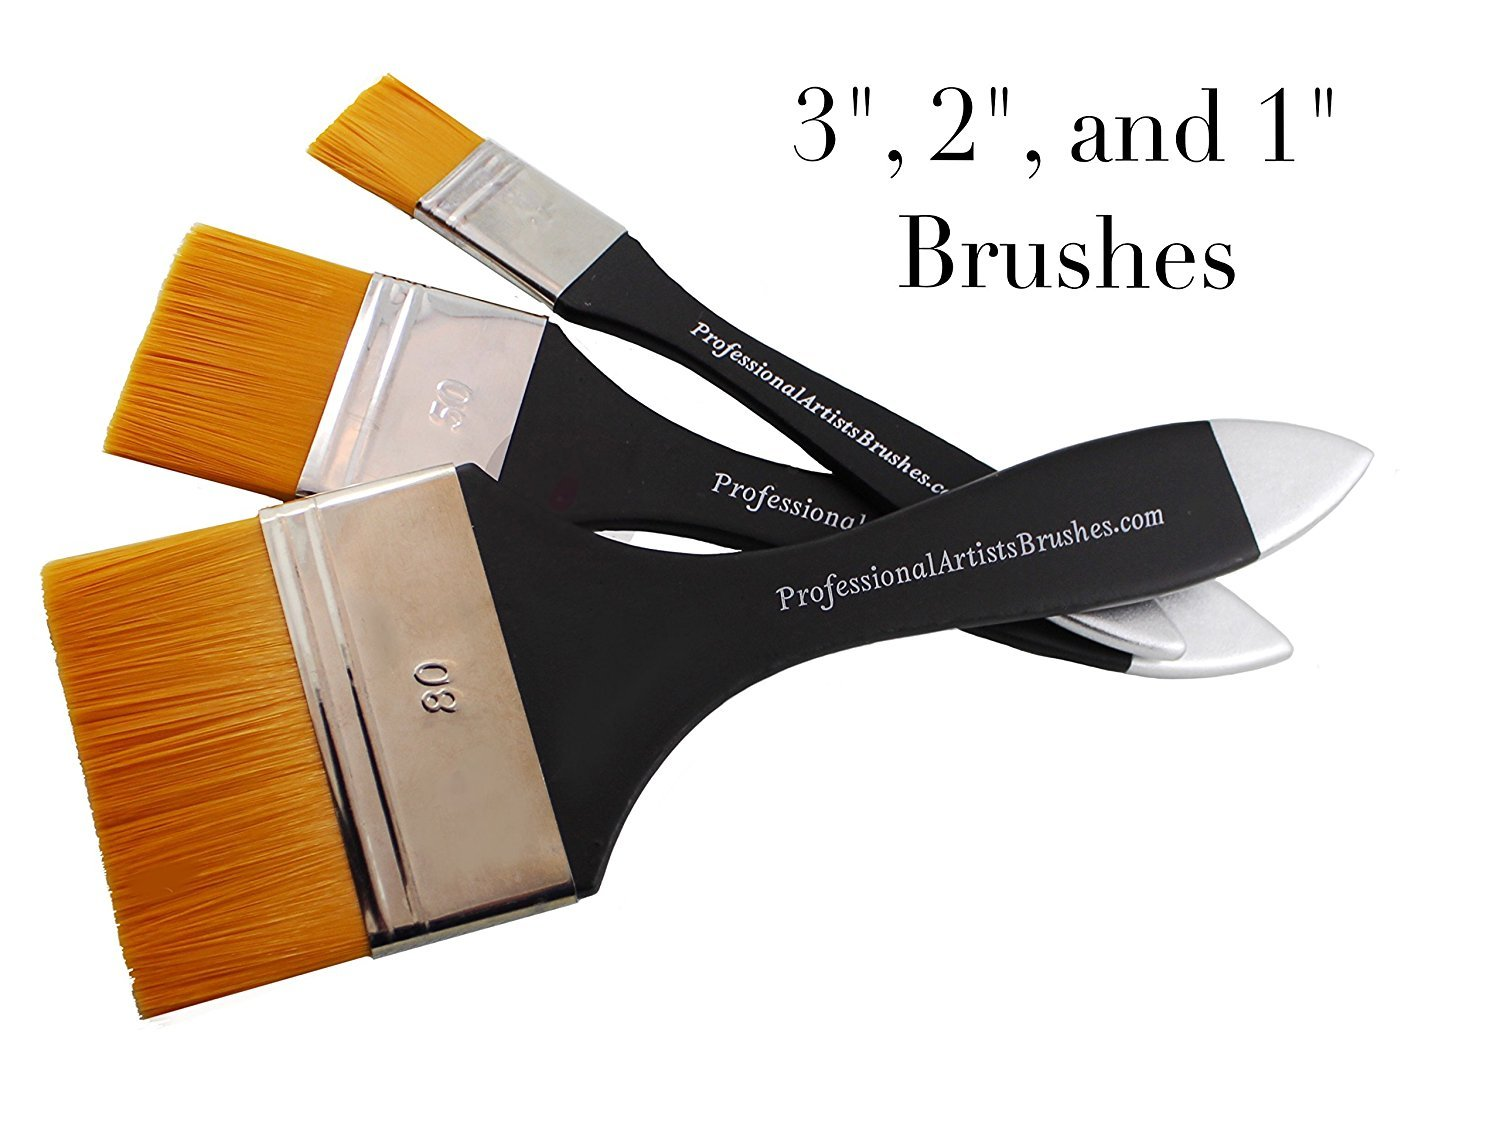 Watercolor Brush Set for Acrylics and Oils too, Best Professional Quality, Use These Square Wash Brushes to Paint Large Areas Quickly and Smoothly, for Mixed Media Techniques and More, Free Online Instruction. Money Back Guarantee PKB Select Wash Brush Set